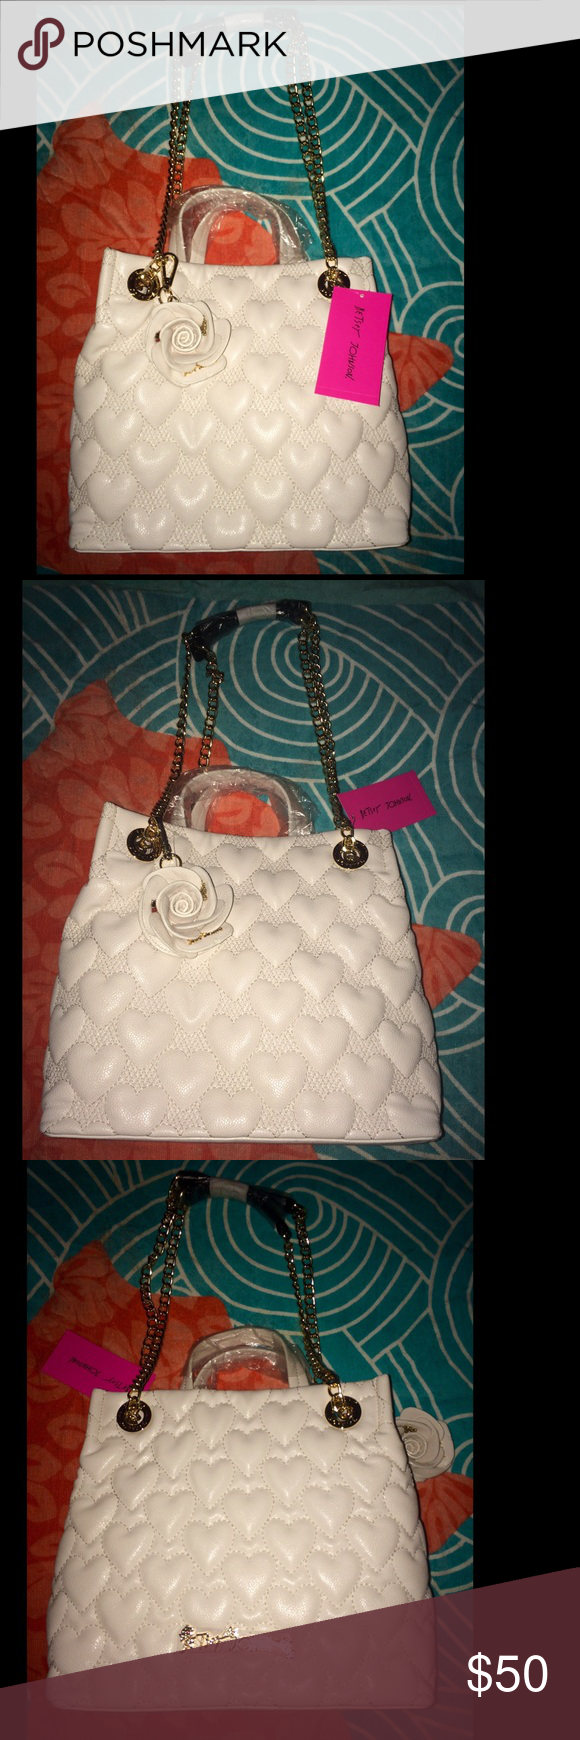 """*New* Betsey Johnson Shopper Bag, White Betsey Johnson """"Bee Mine"""" Heart-Quilted Shopper Bag, in white. This bag has golden hardware and a chain shoulder strap with a hanging floral charm, which has a mirror on one side that says """"Hey, good looking!"""". The shoulder strap has an 11"""" drop. The bag has an open top with a snap-tab closure. Measurements are: 9.8""""H x 11""""W x 5.5""""D; weighs 1 lb. 14.8 oz. Betsey Johnson Bags Shoulder Bags"""